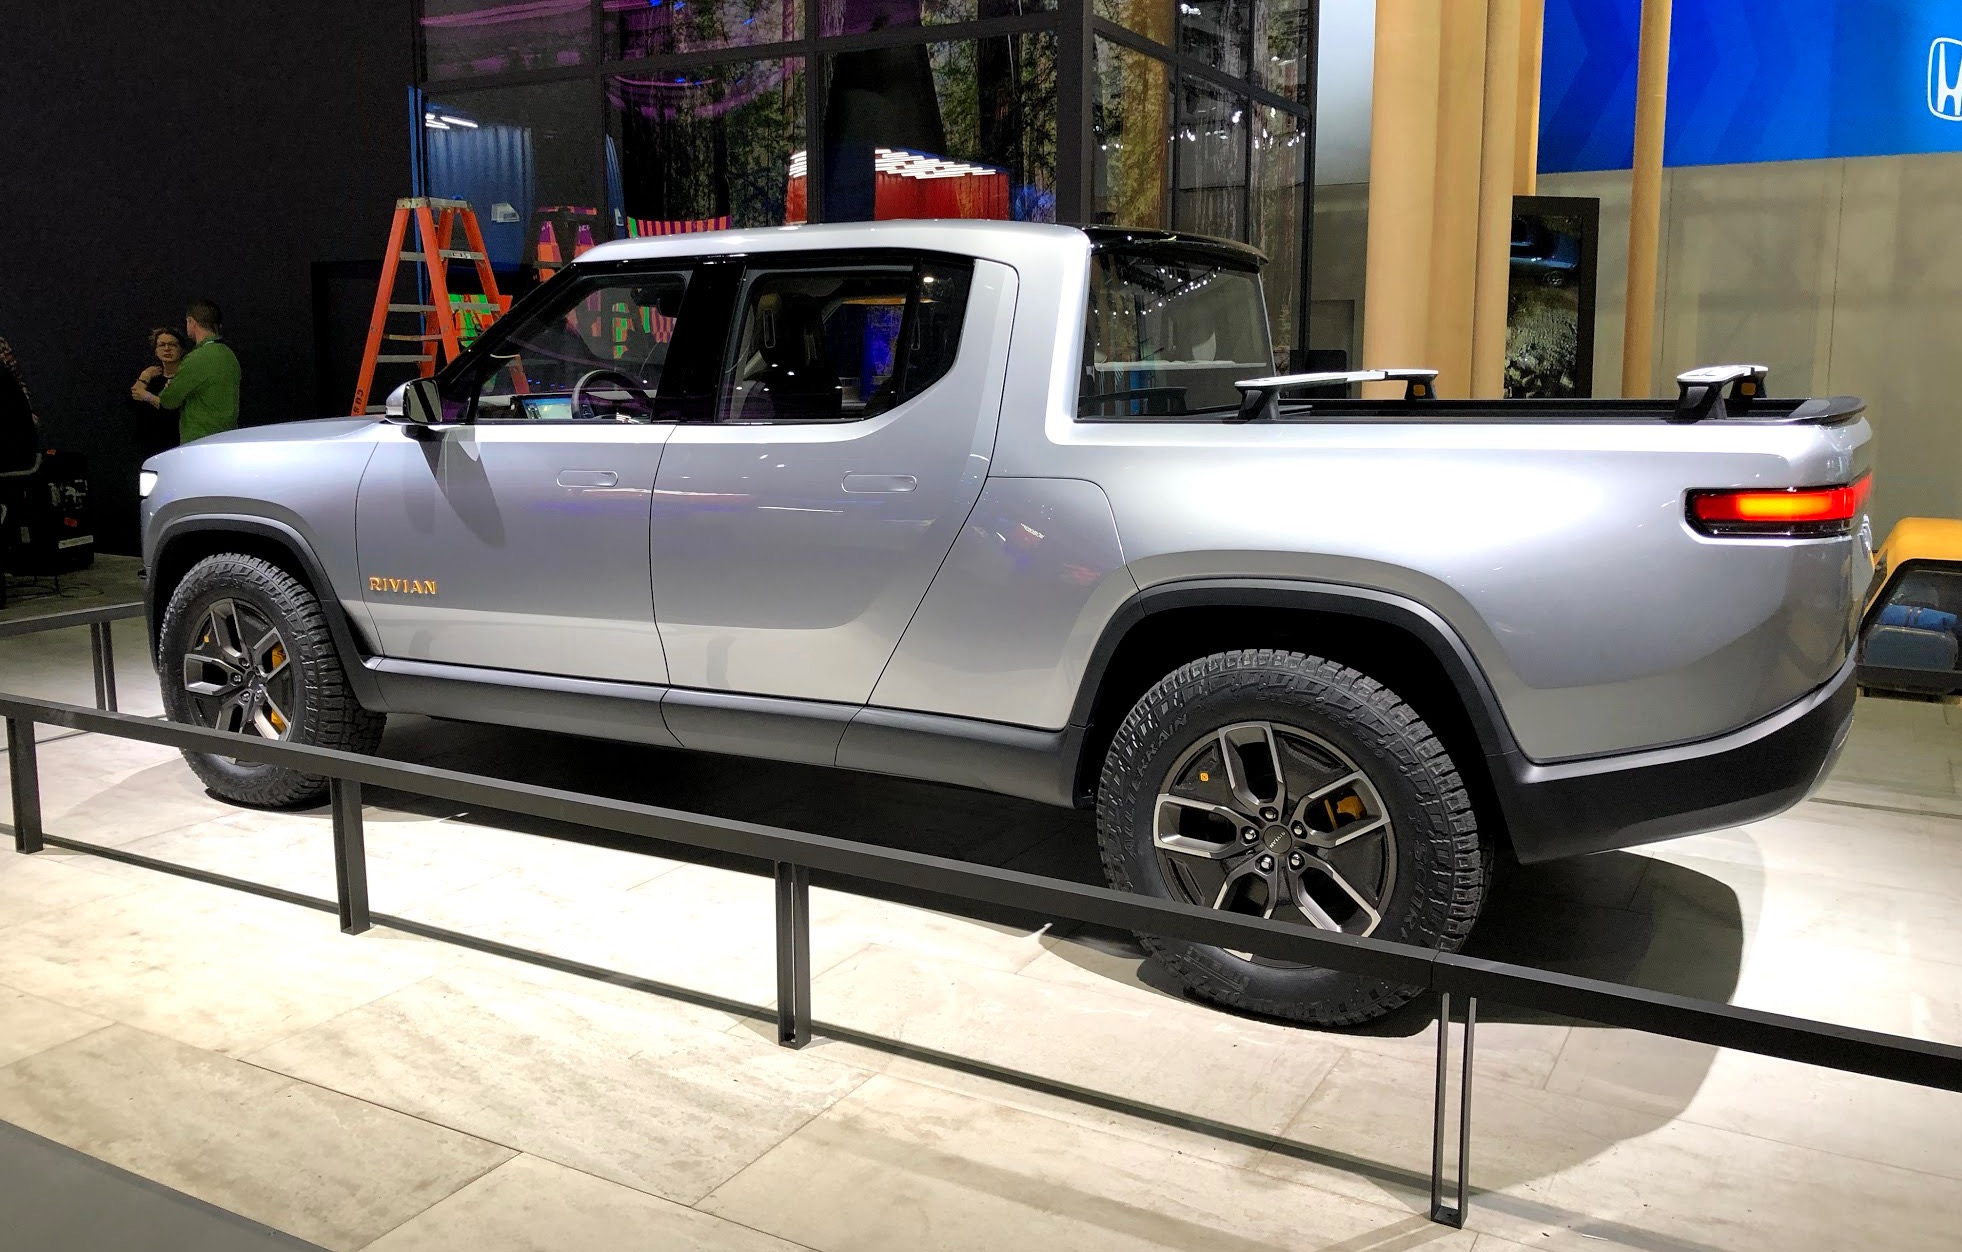 Closer look at Rivian's R1T all-electric pickup truck and